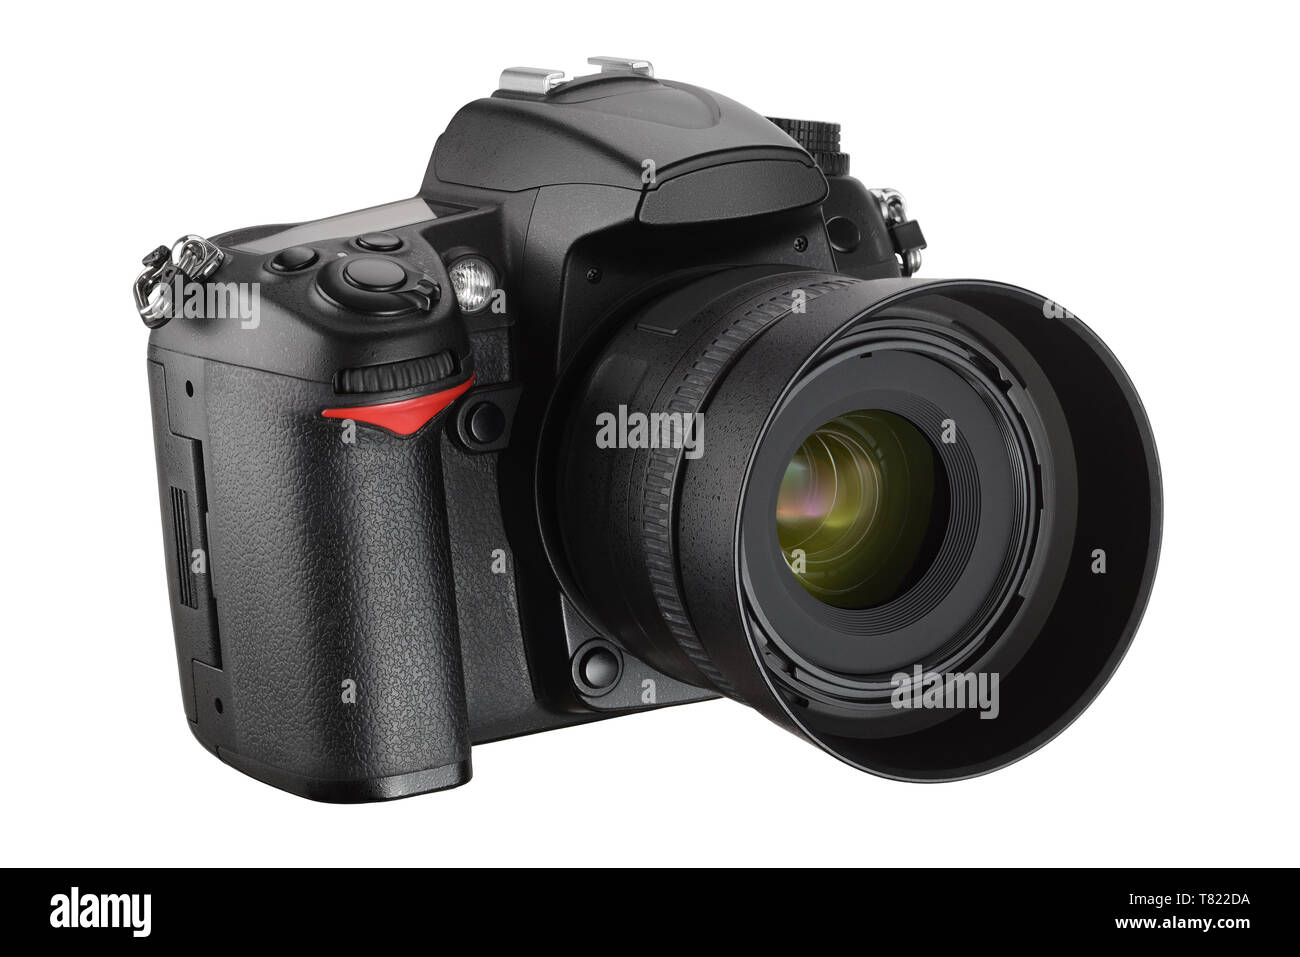 Black digital camera isolated on white background with clipping path - Stock Image